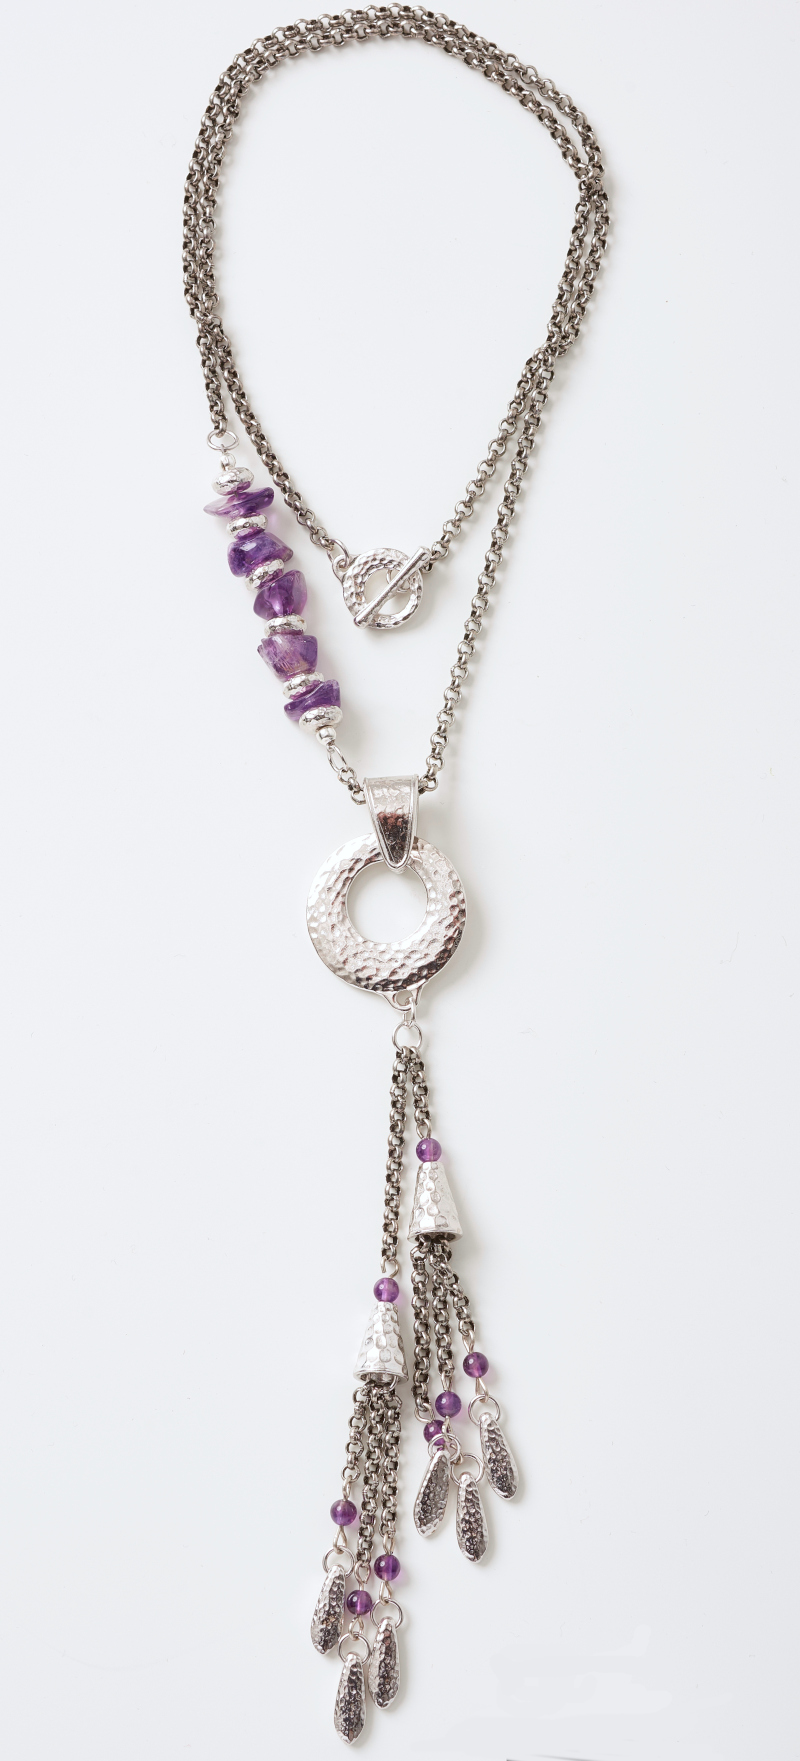 panecklace-full-800px.jpg